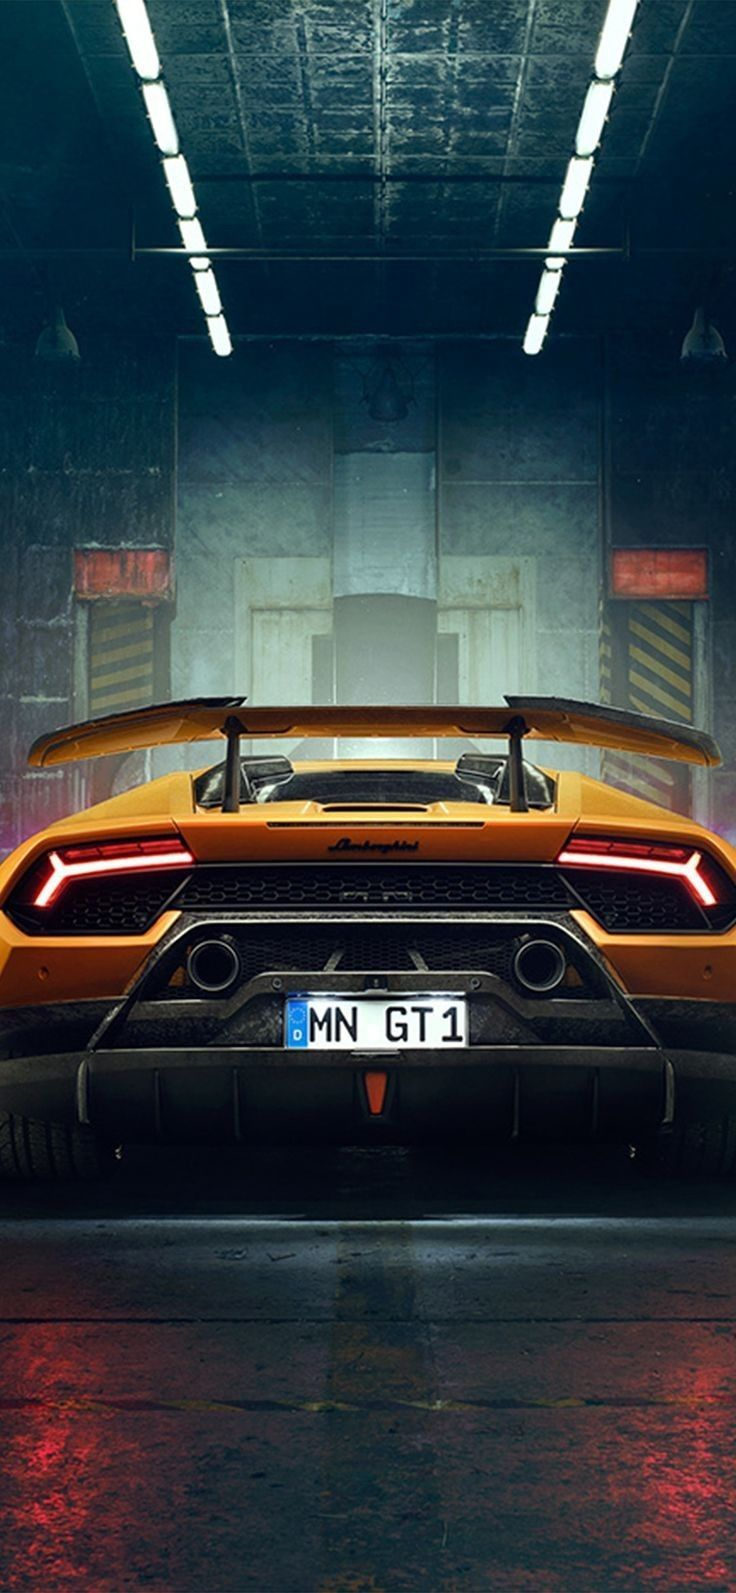 Top 20 Fastest Cars In The World Best Picture Fastest Sports Cars Lamborghini Cars Lamborghini Wallpaper Iphone Car Iphone Wallpaper